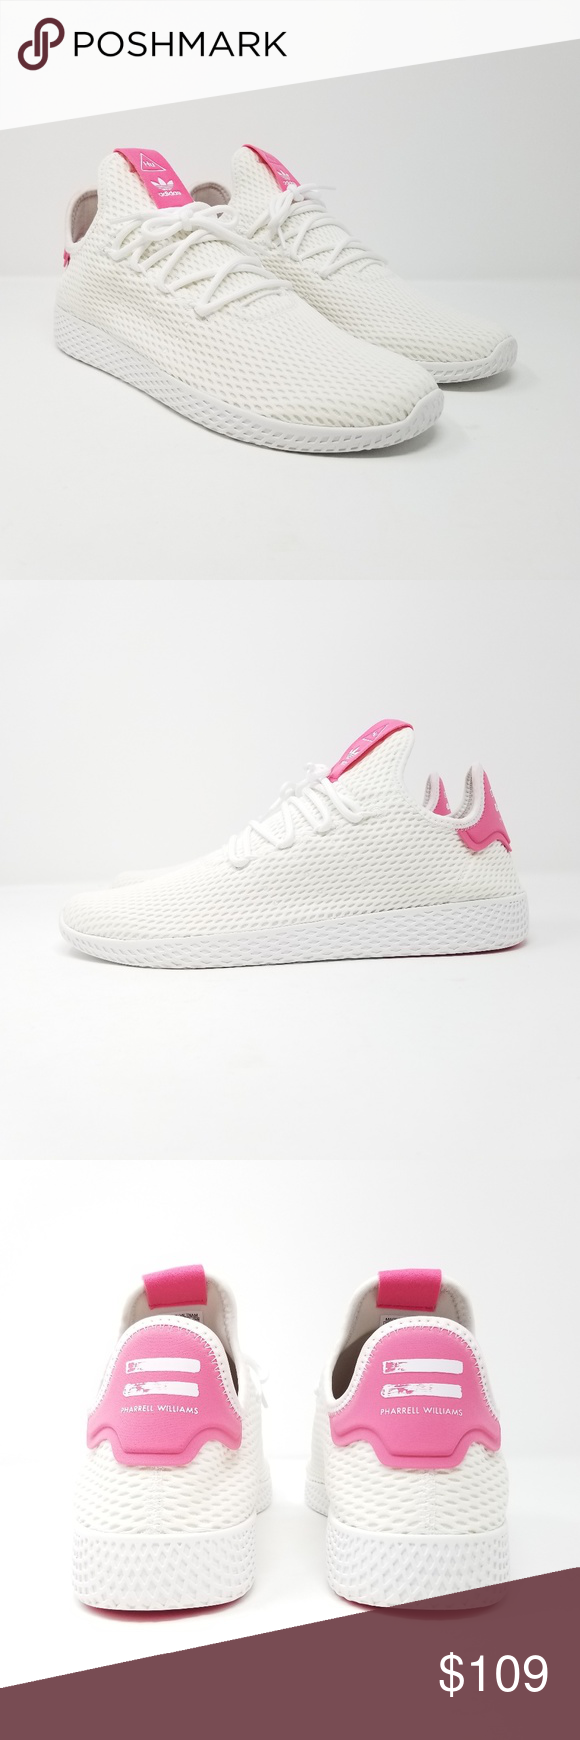 f8ca9b802cc7a Adidas Men s Pharrell Williams PW Tennis HU Shoes Adidas Men s Pharrell  Williams PW Tennis HU Shoes Style Number  BY8714 Color  White Pink Brand  New With ...